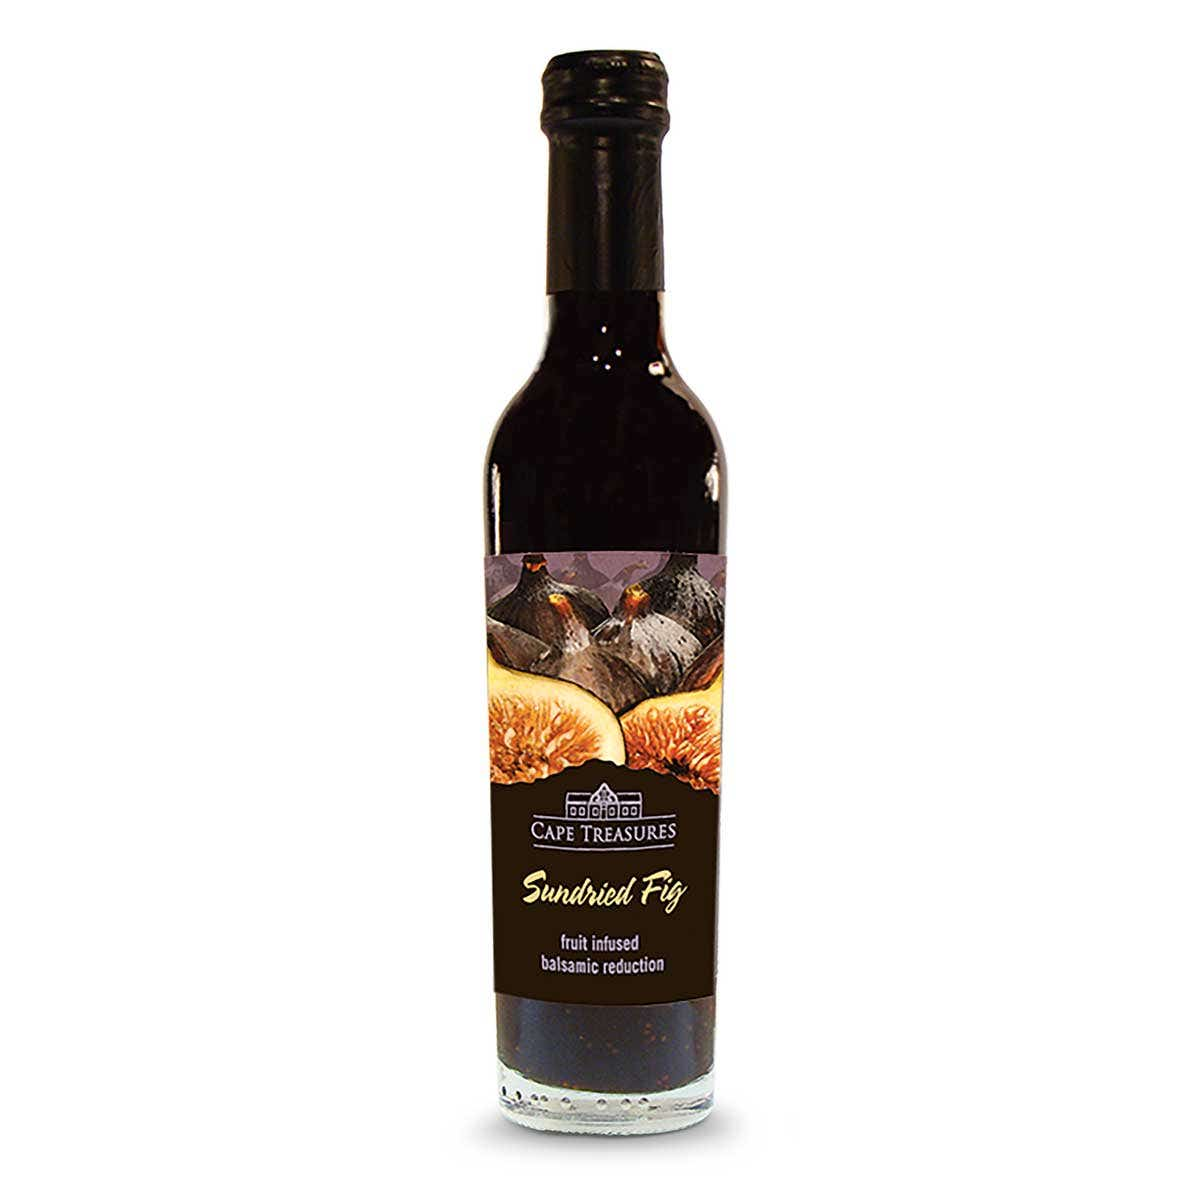 Cape Treasures Sundried Fig Infused Balsamic Reduction (250ml)